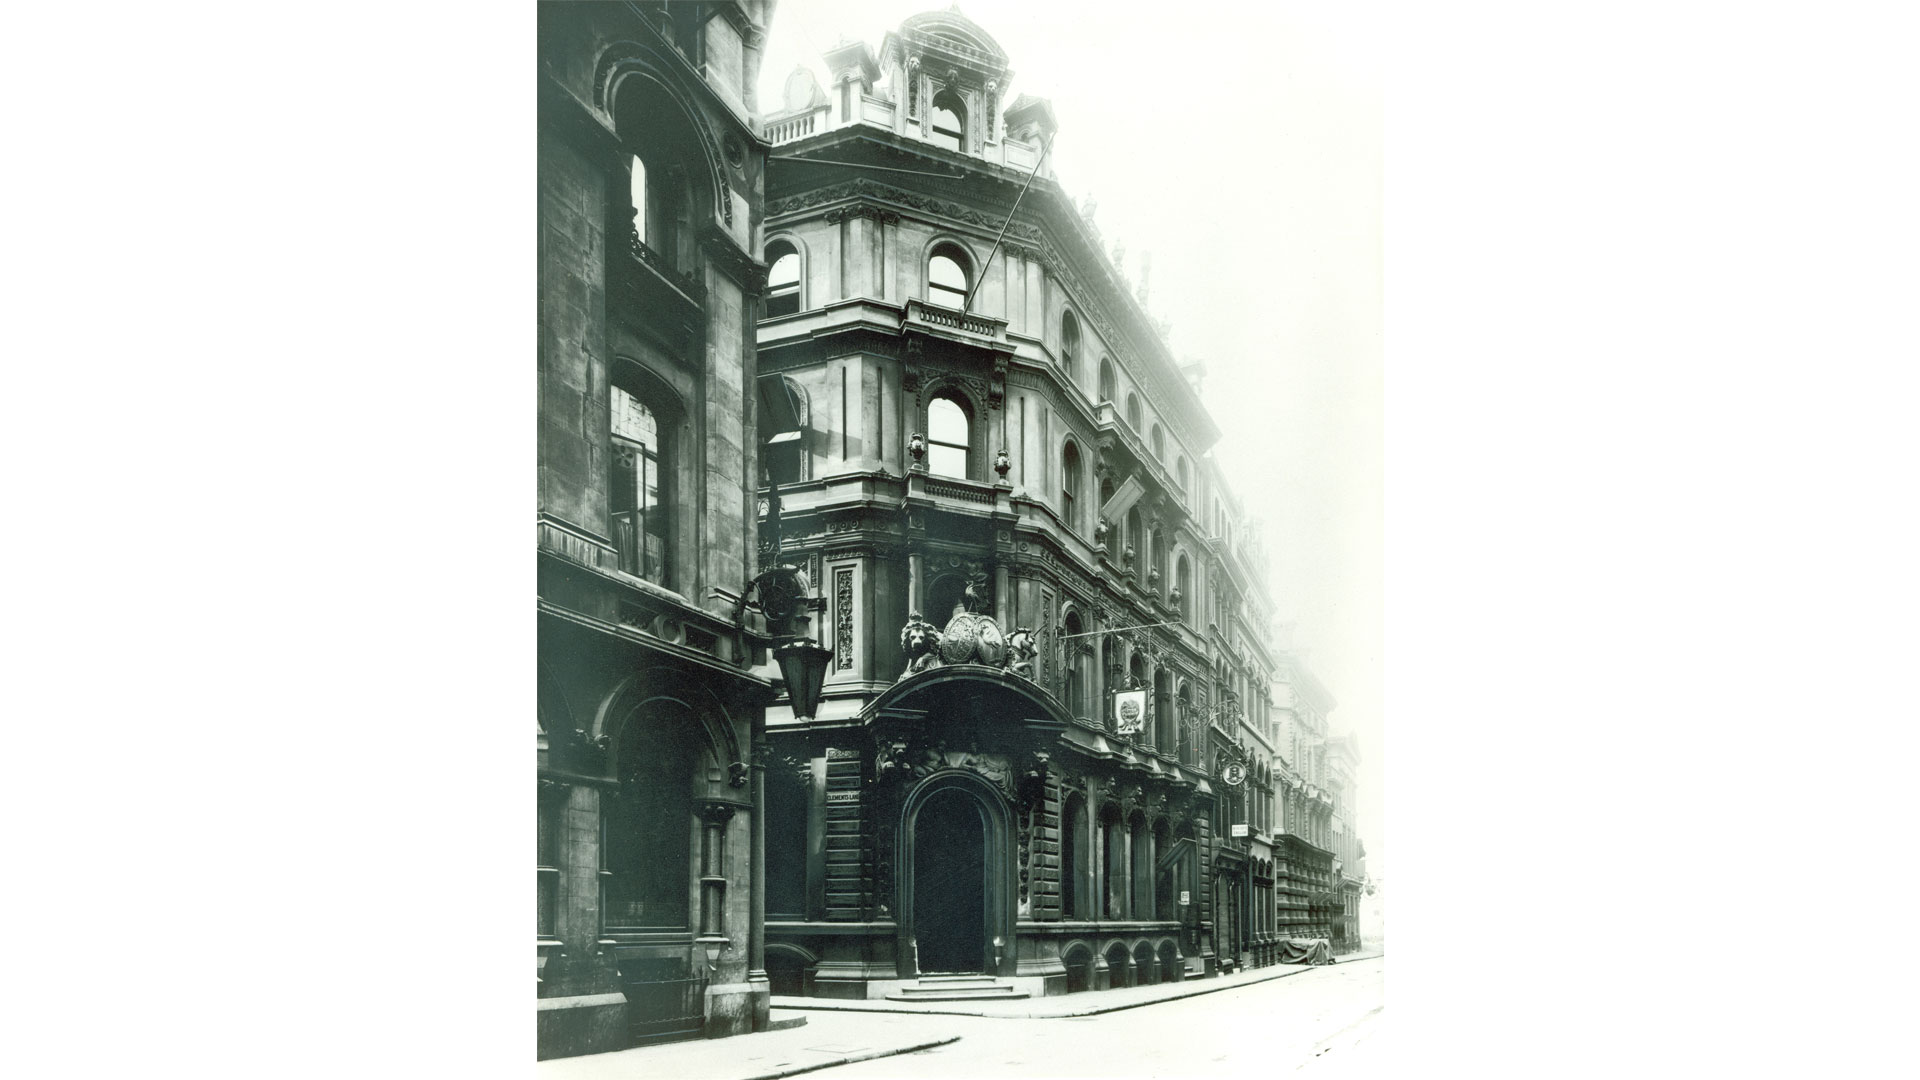 The main entrance to 27 Lombard St., the location of the bank's London Branch from 1870-1887, circa 1900.